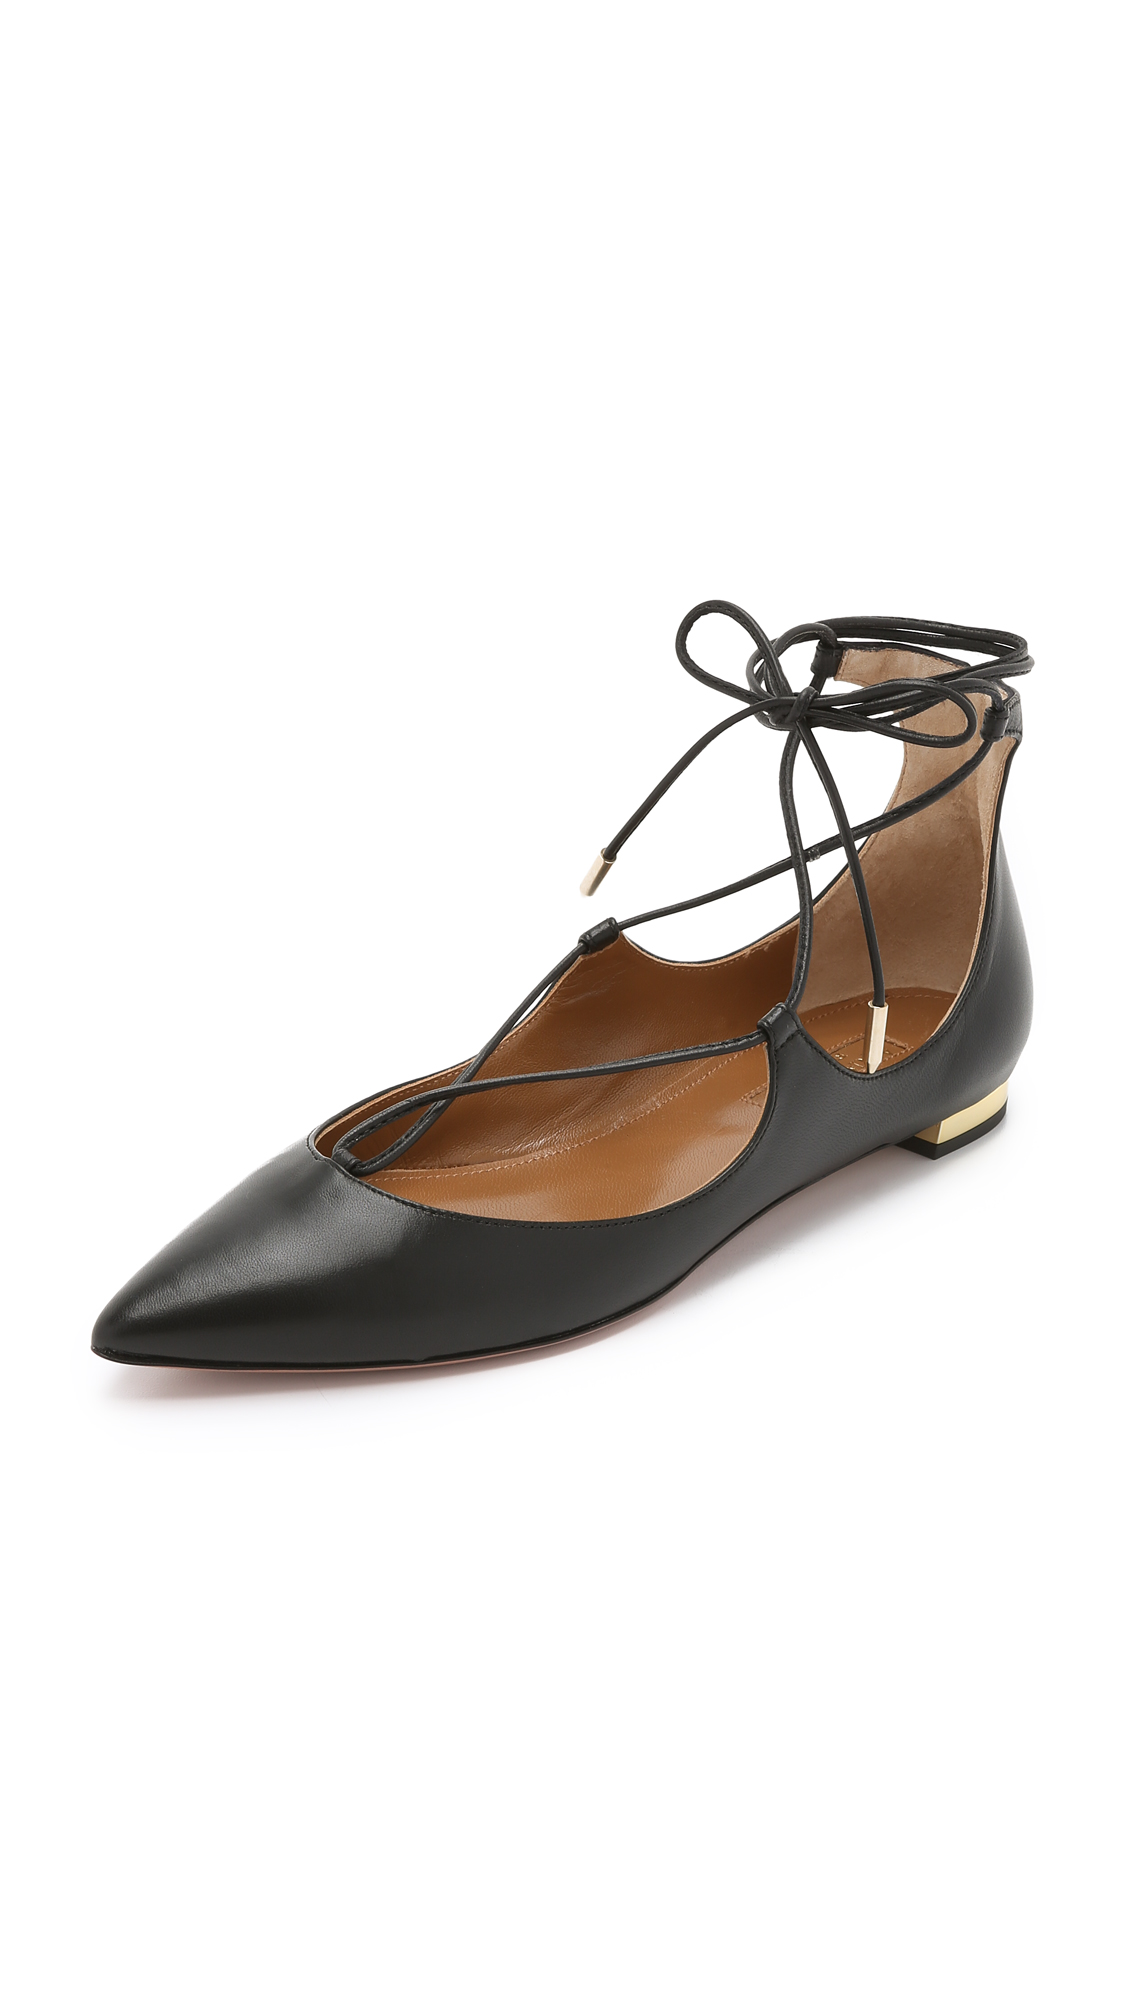 Aquazzura Christy Flats - Black